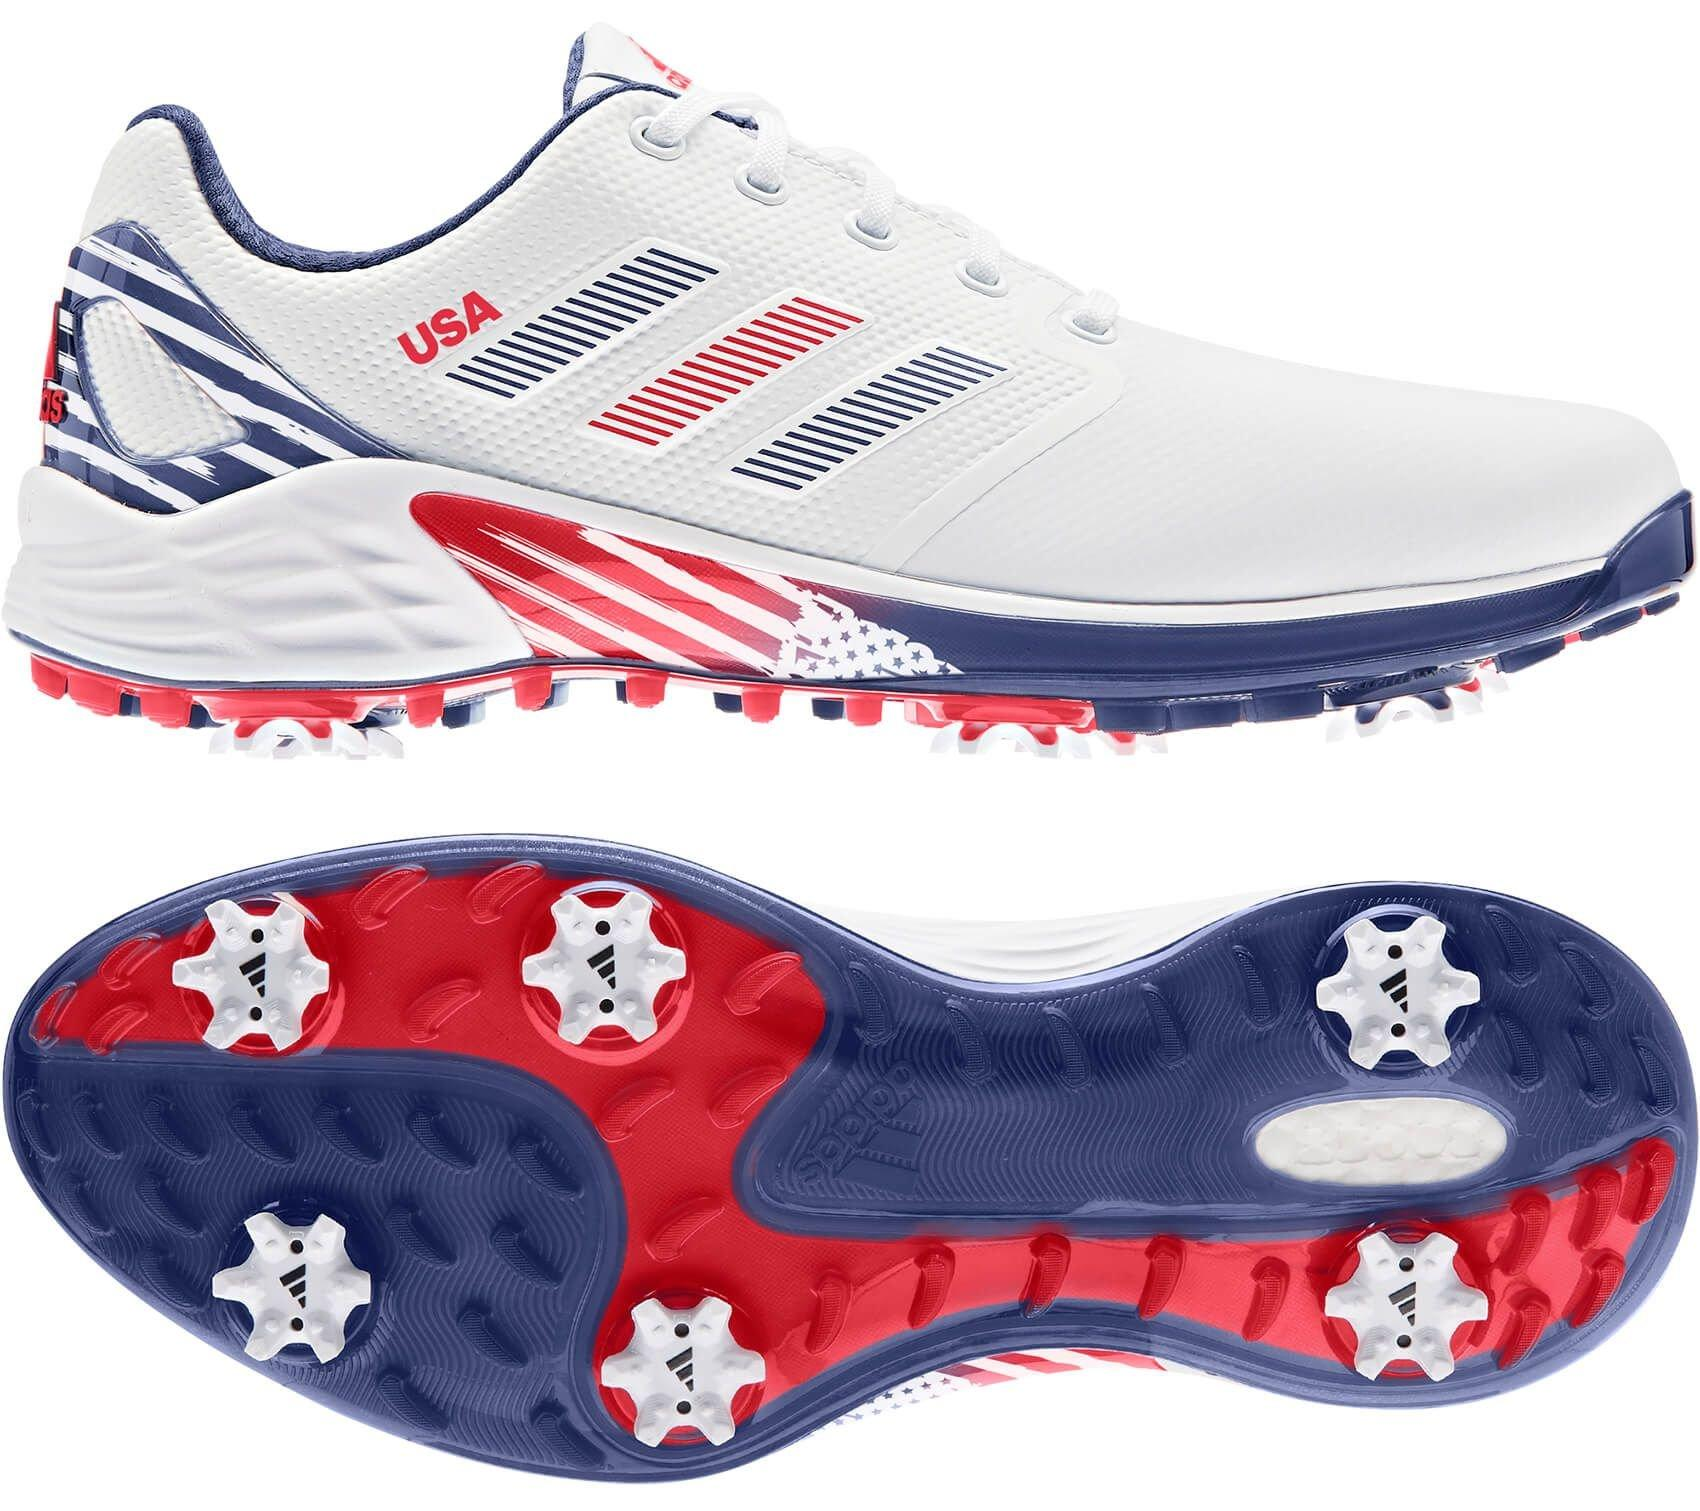 adidas ZG21 USA Limited Edition Golf Shoes 2021 - White/Crew Navy/Vivid Red